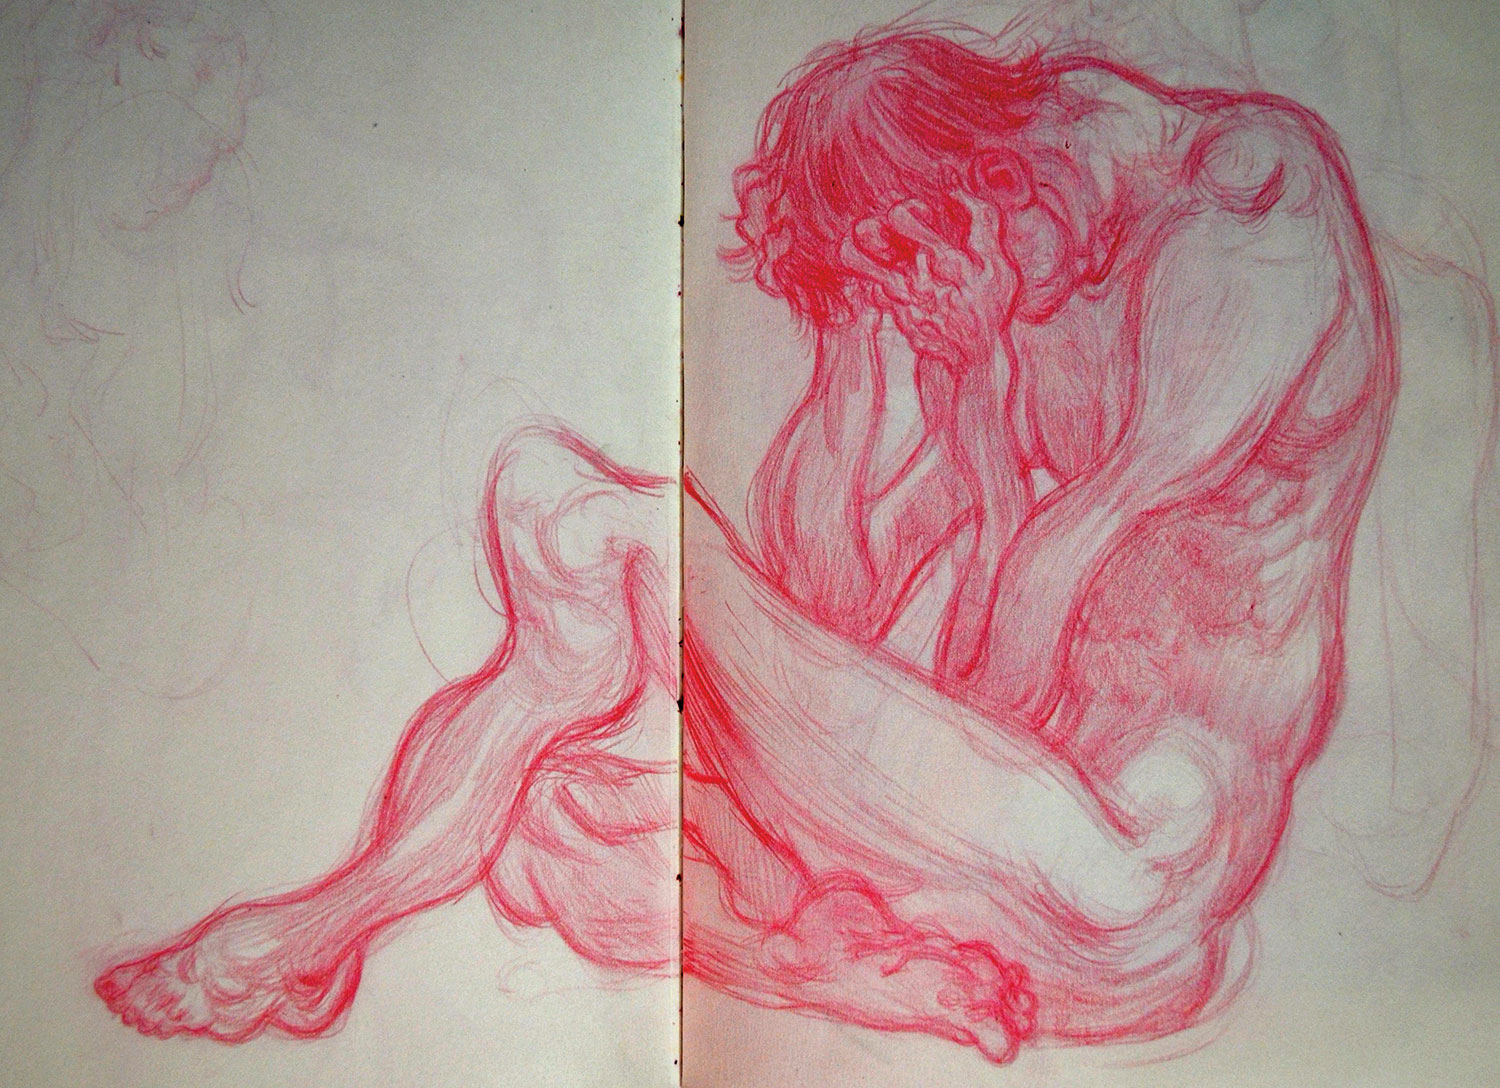 A life drawing of a muscular man